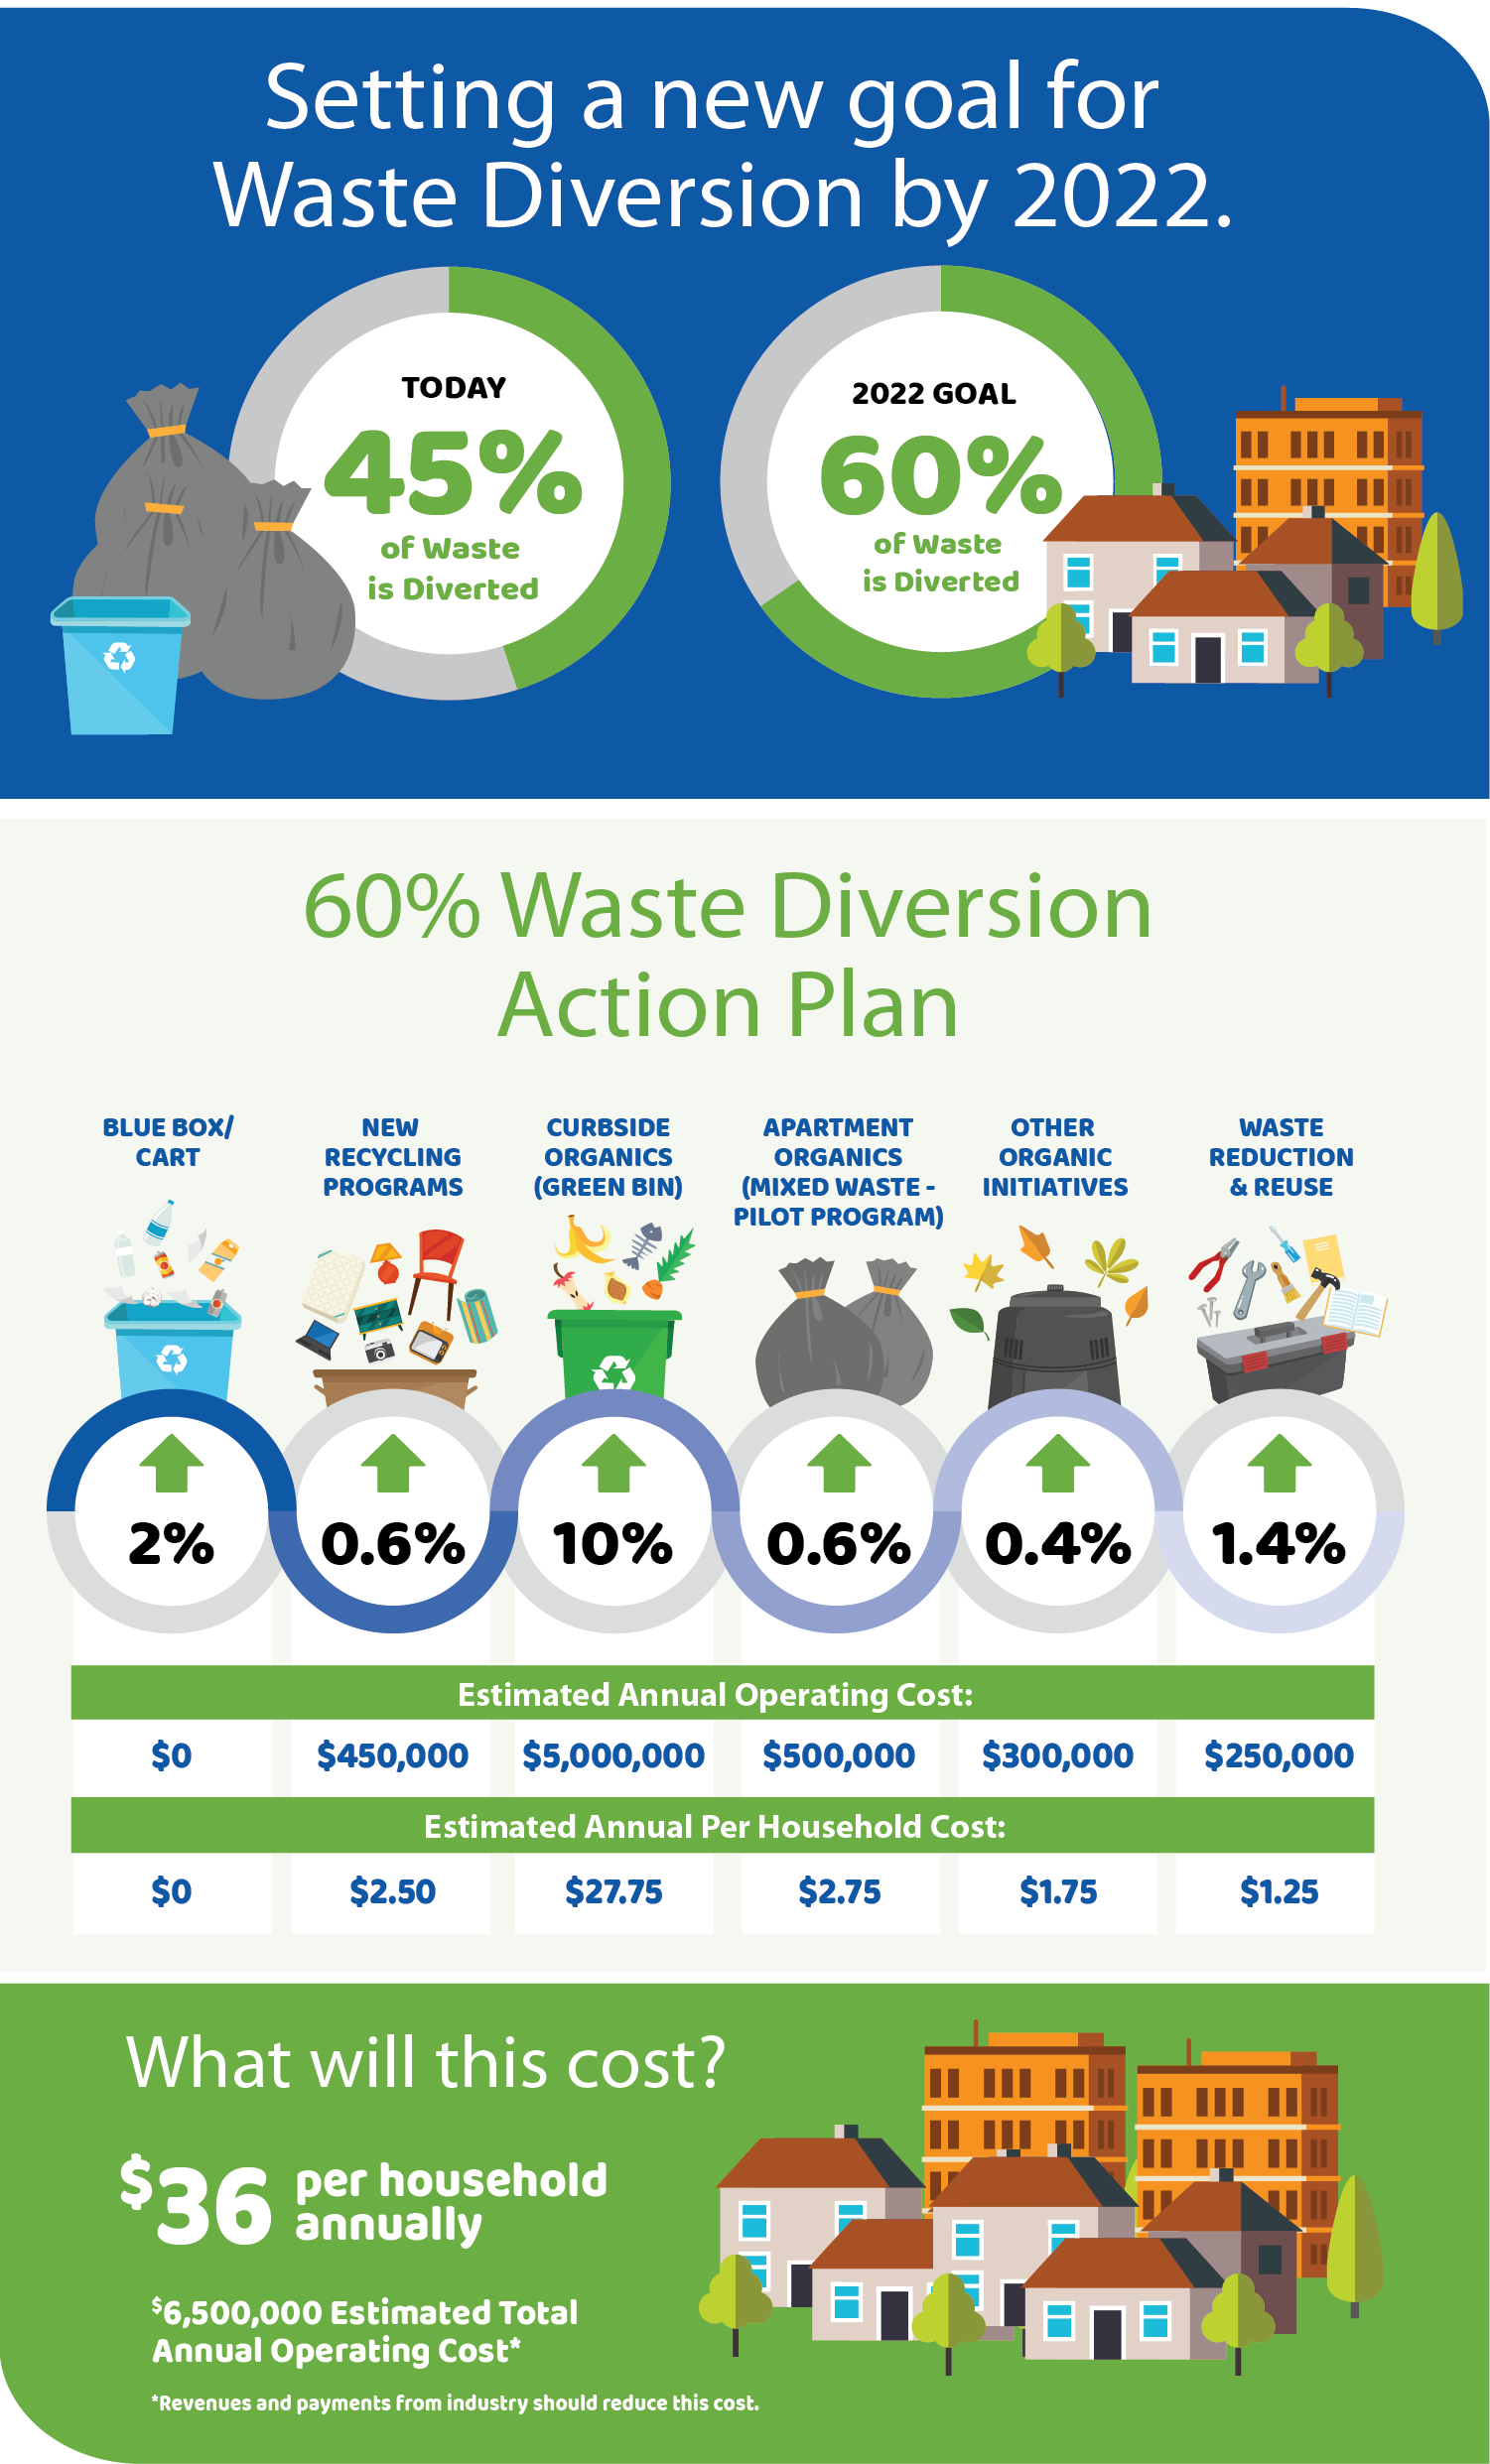 60% Waste Diversion Action Plan